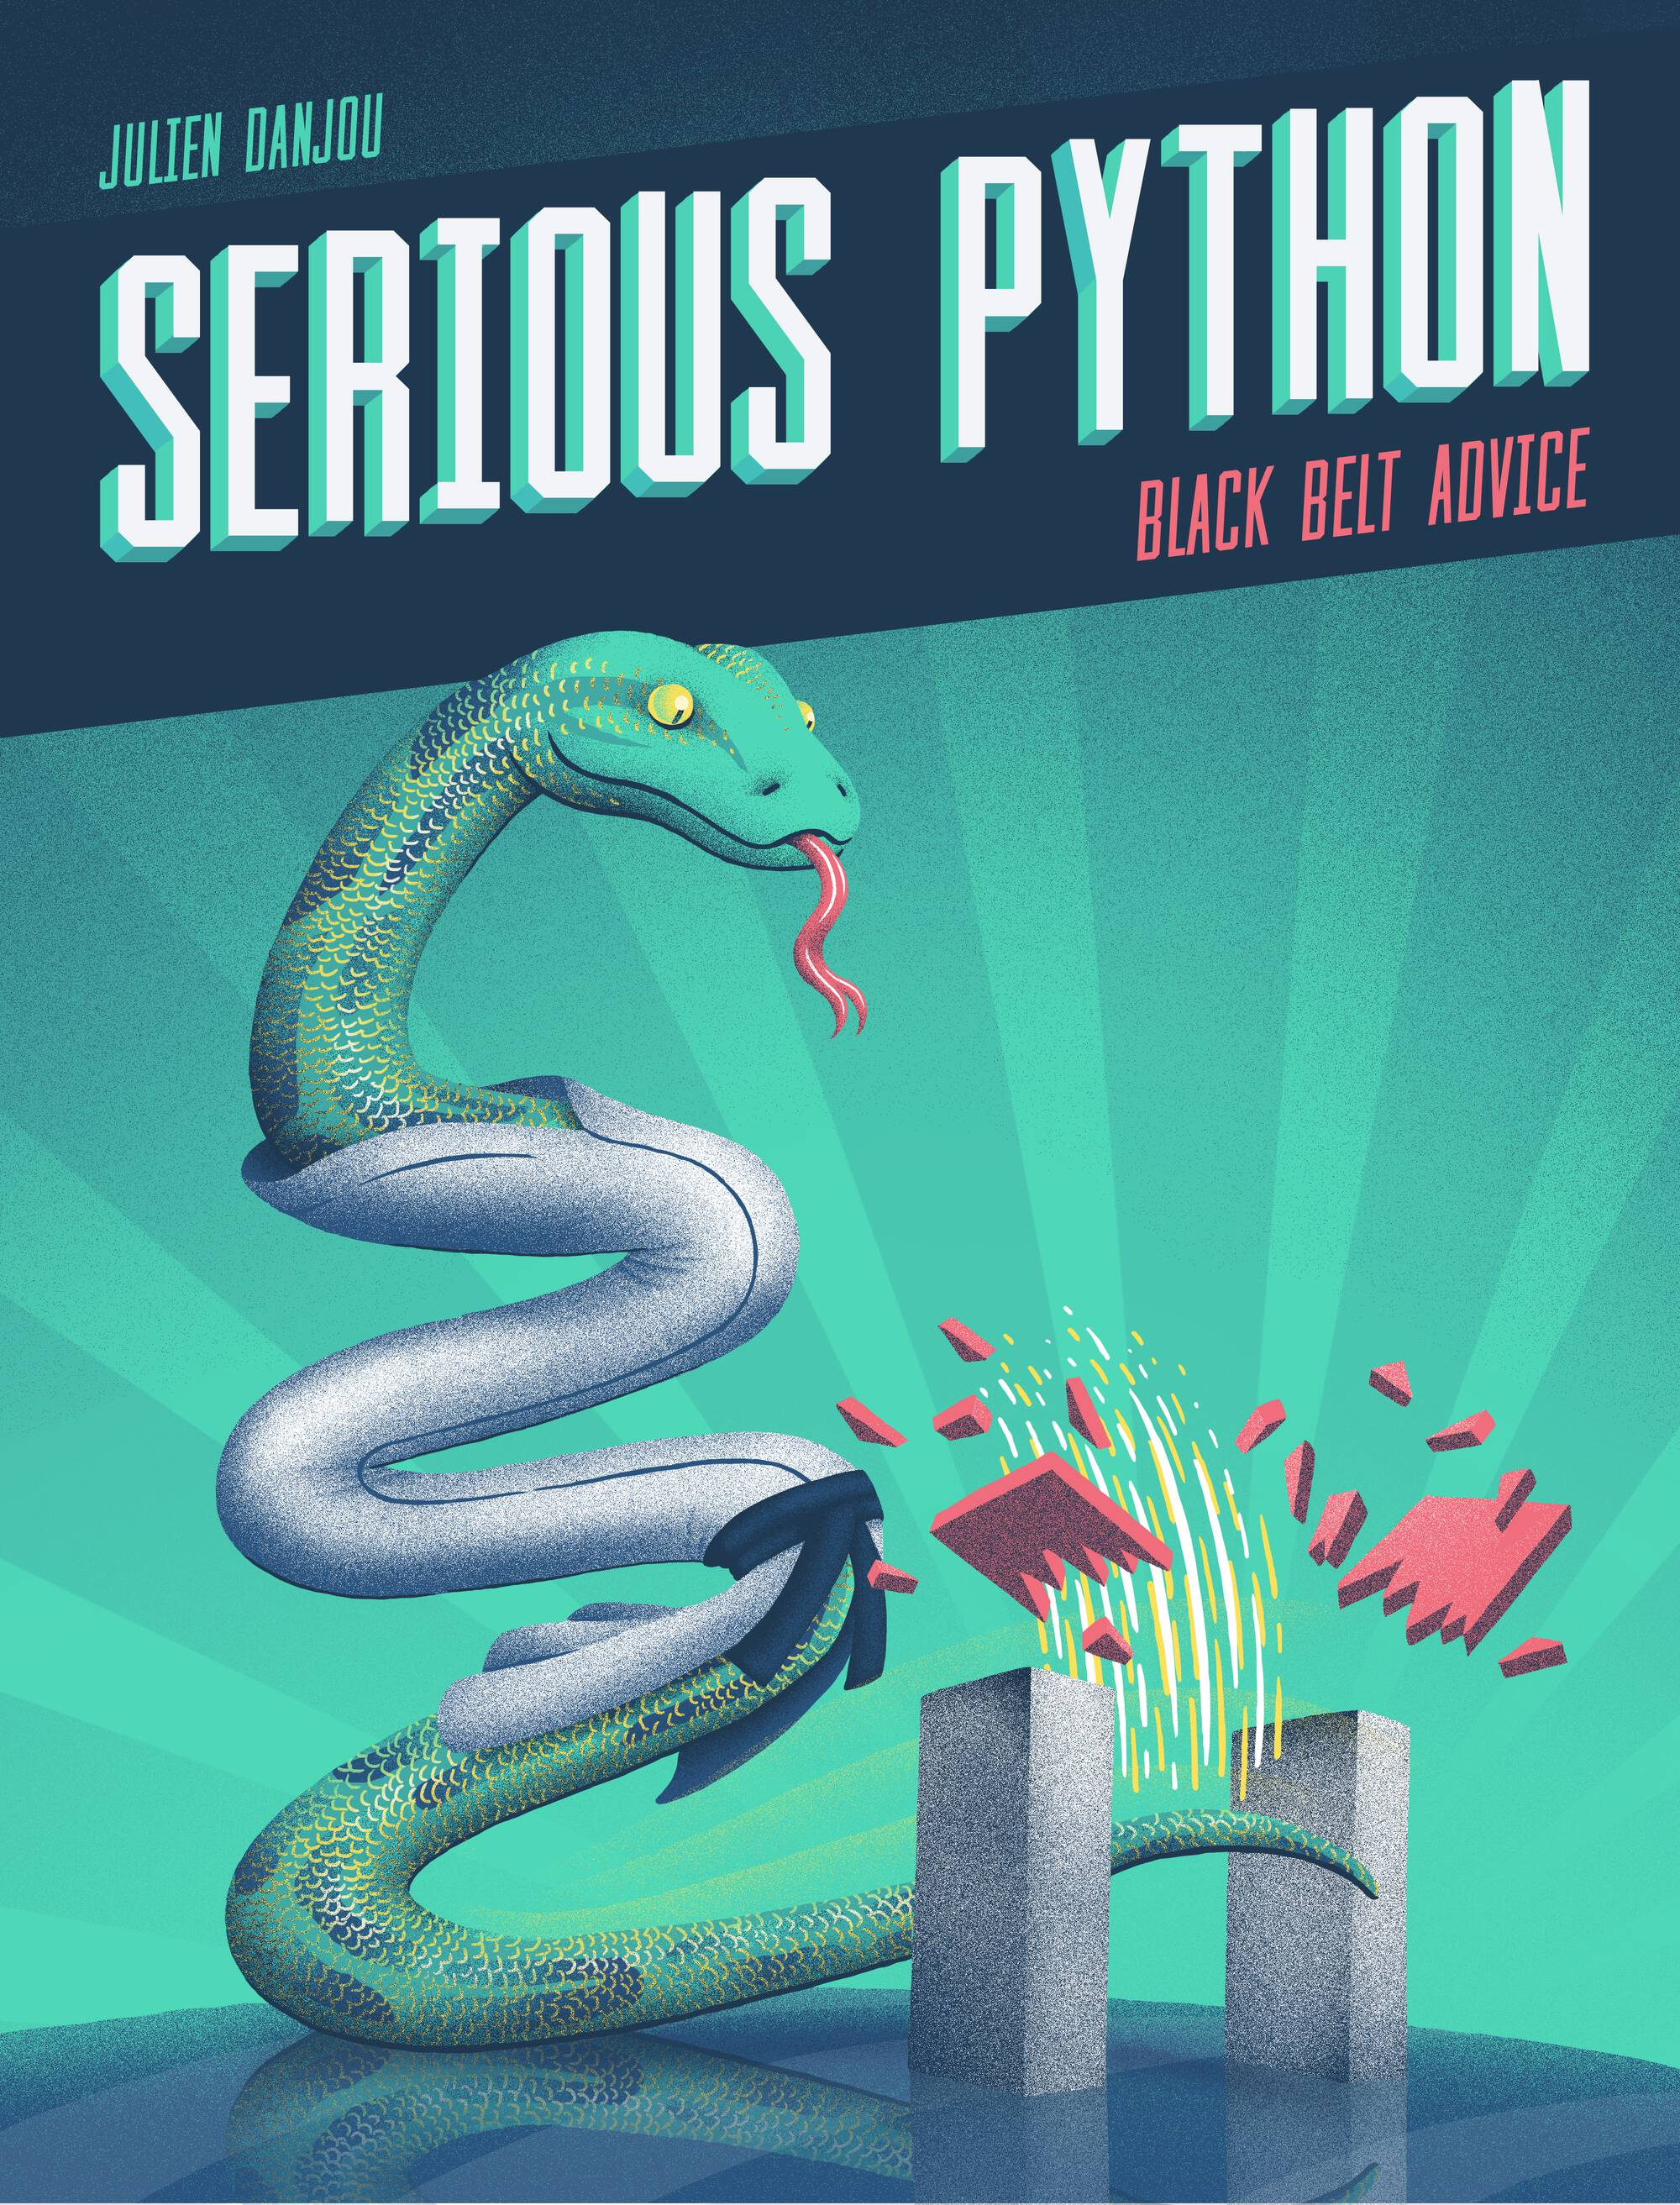 Serious Python released!